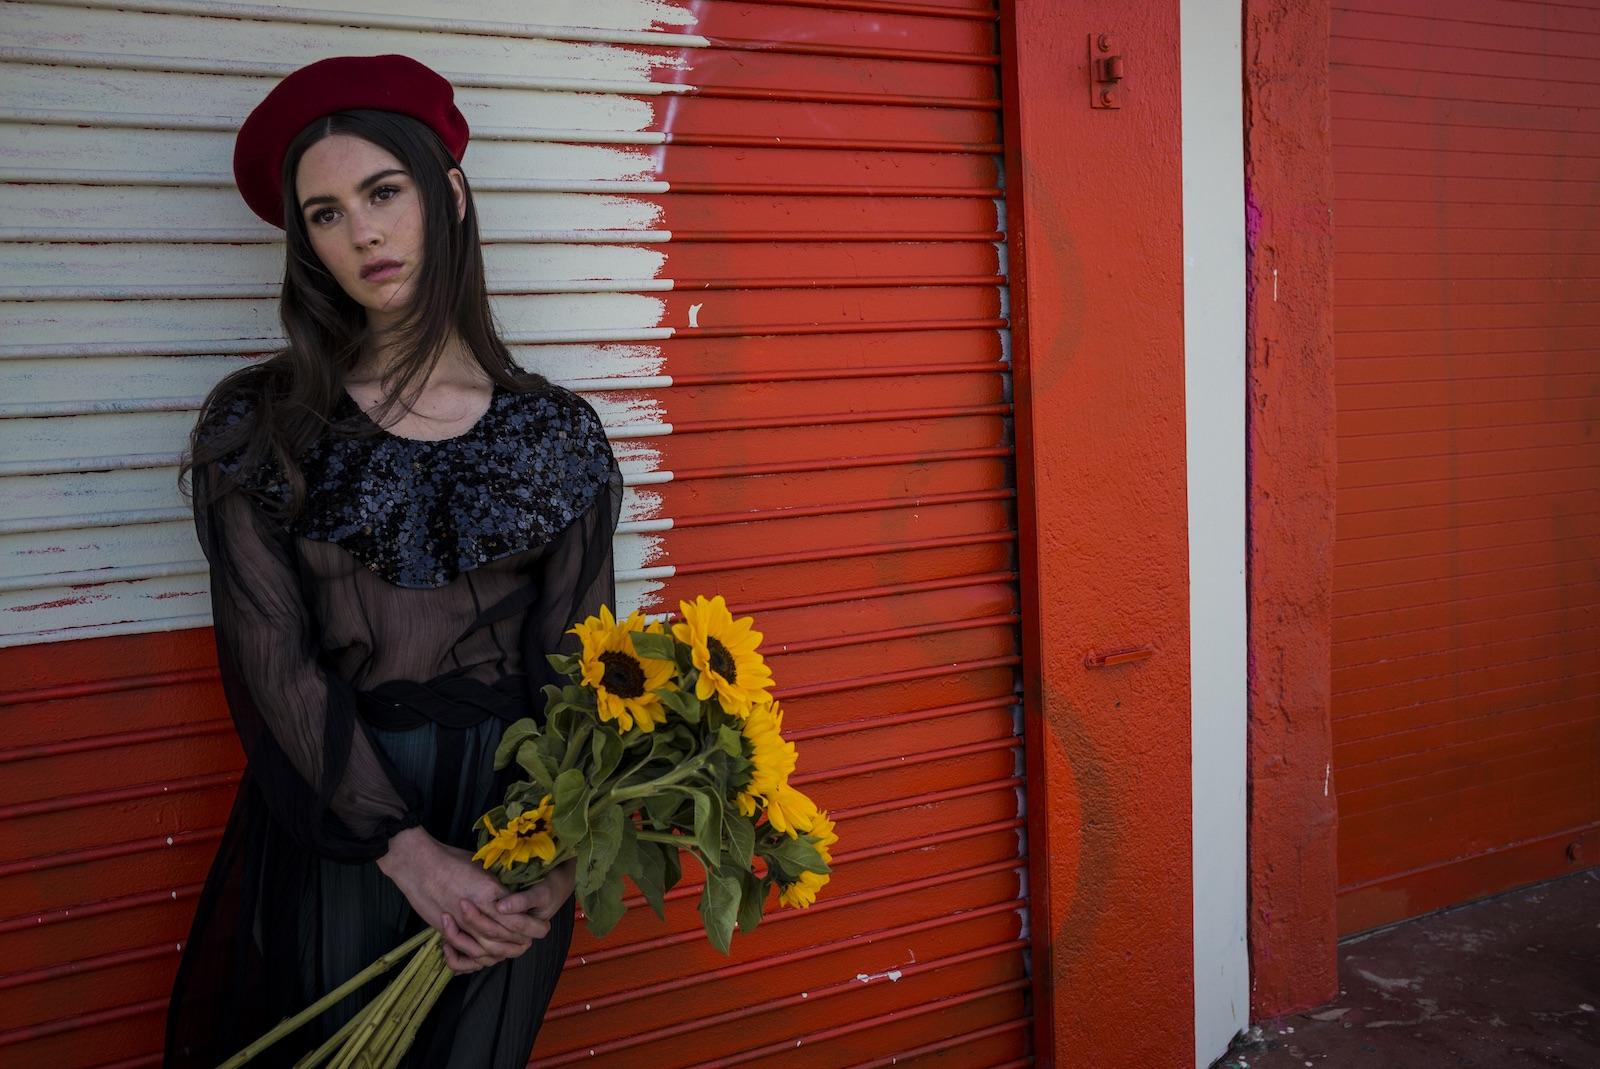 artists on tour gracie abrams against red wall wearing red beret and holding bouquet of sunflowers